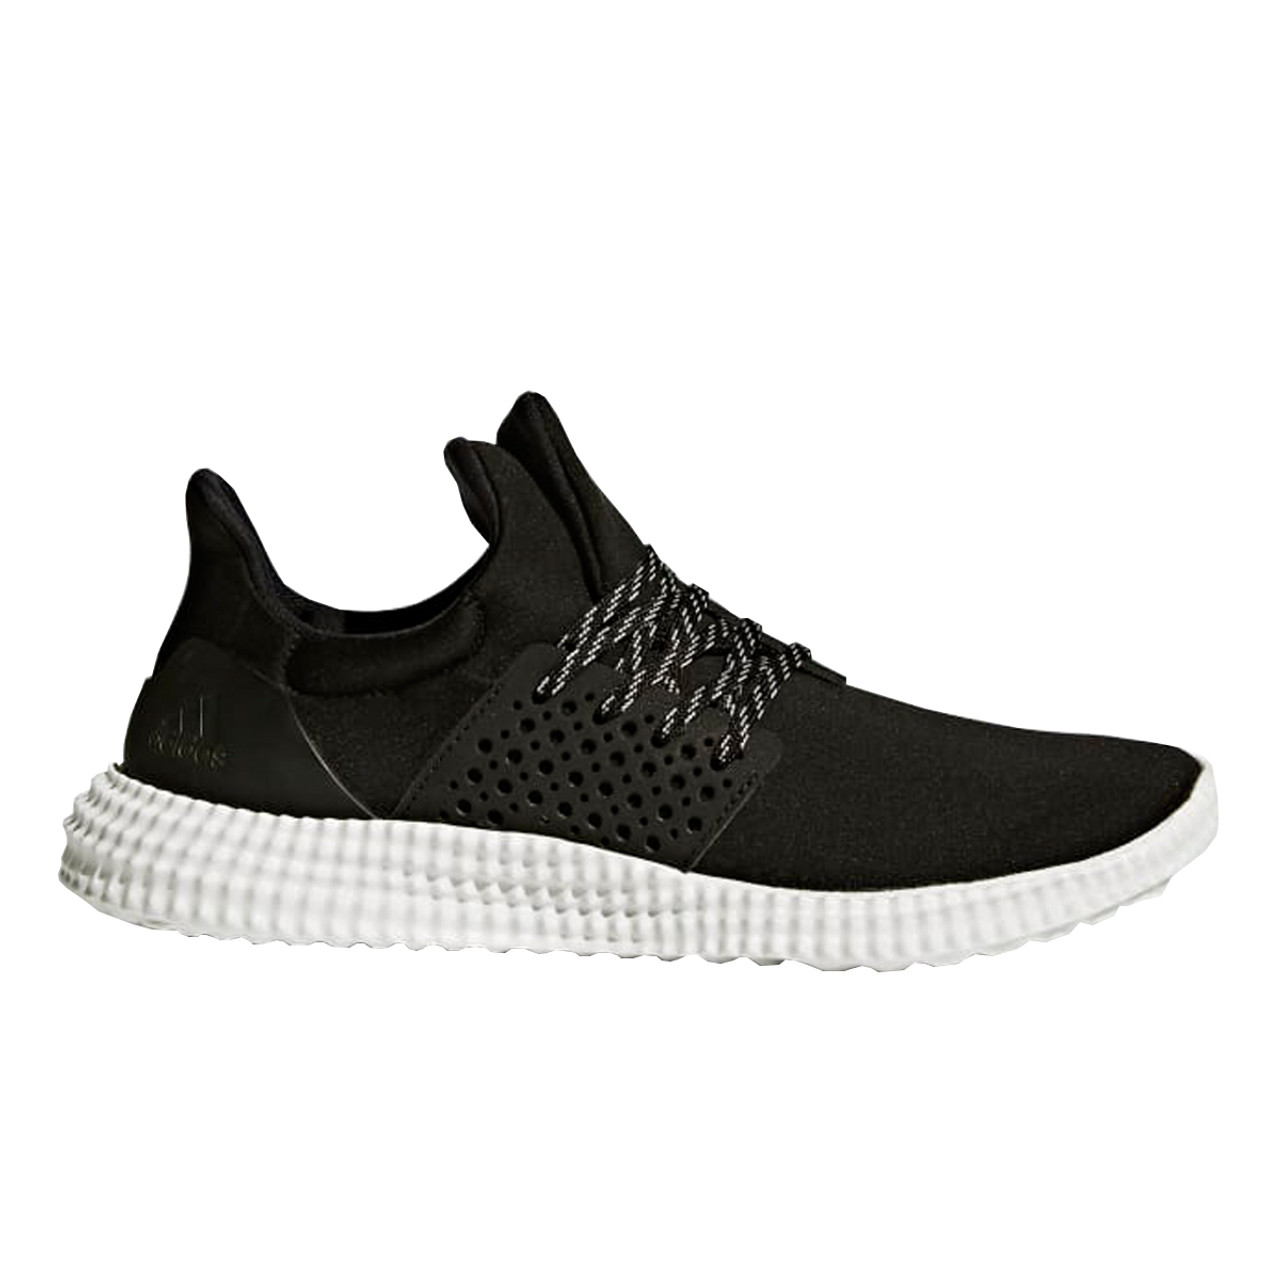 Adidas Womens Shoes : Adidas | Best deals on trainers